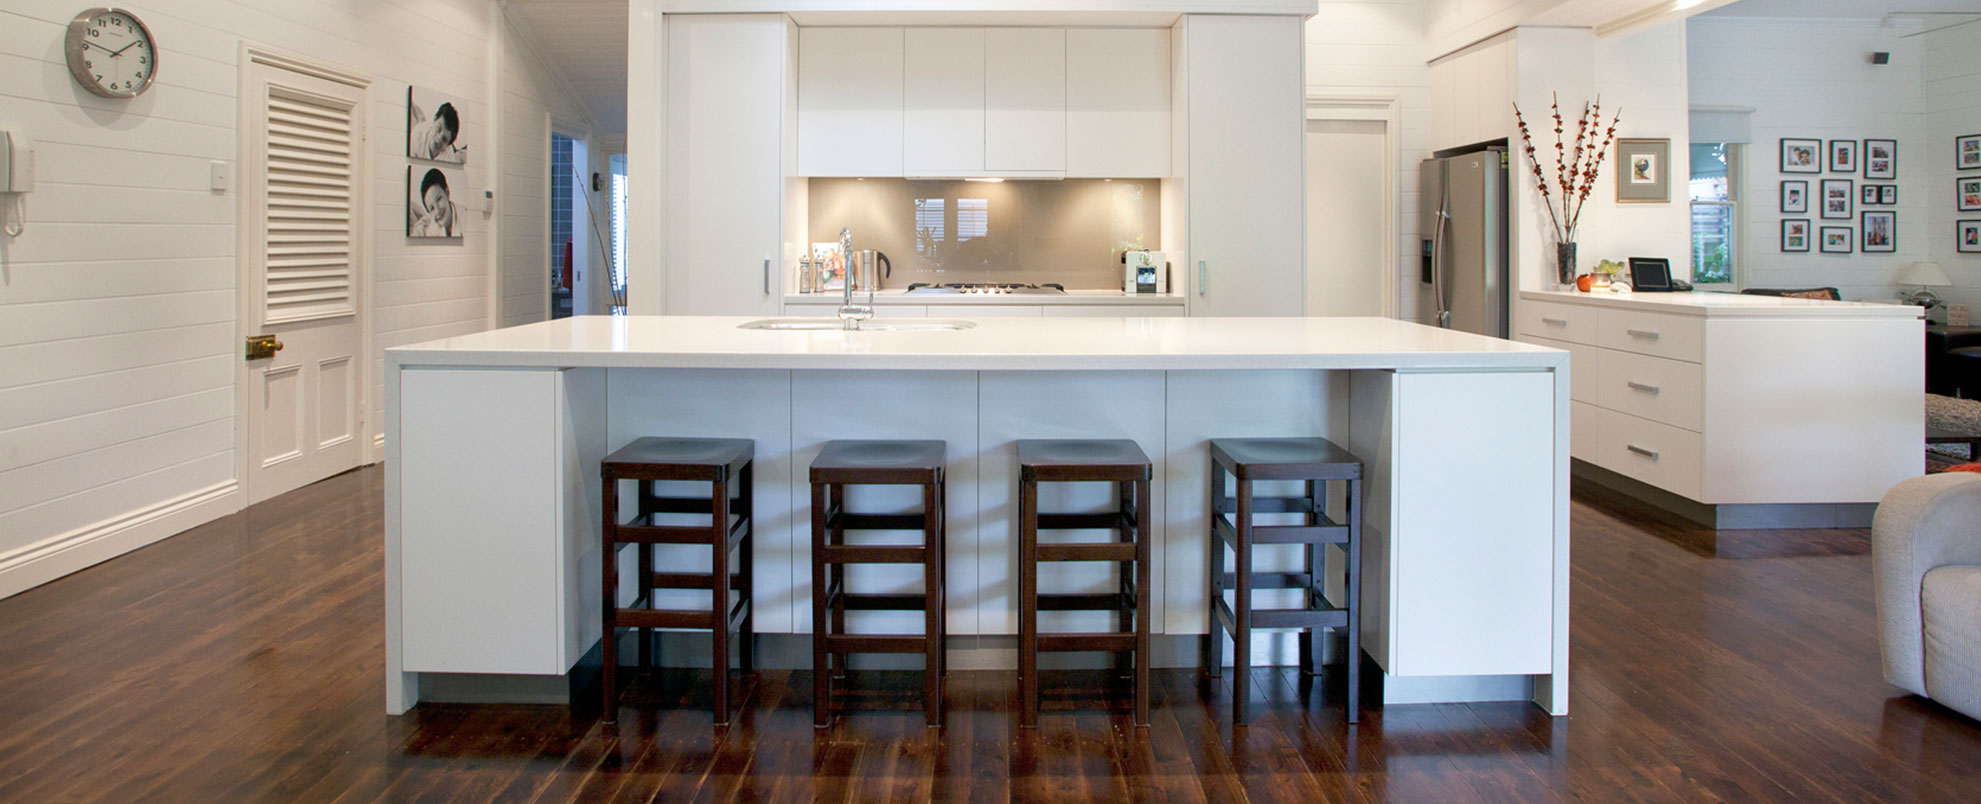 Custom made joinery brisbane interior joinery custom for Kitchen and bath design